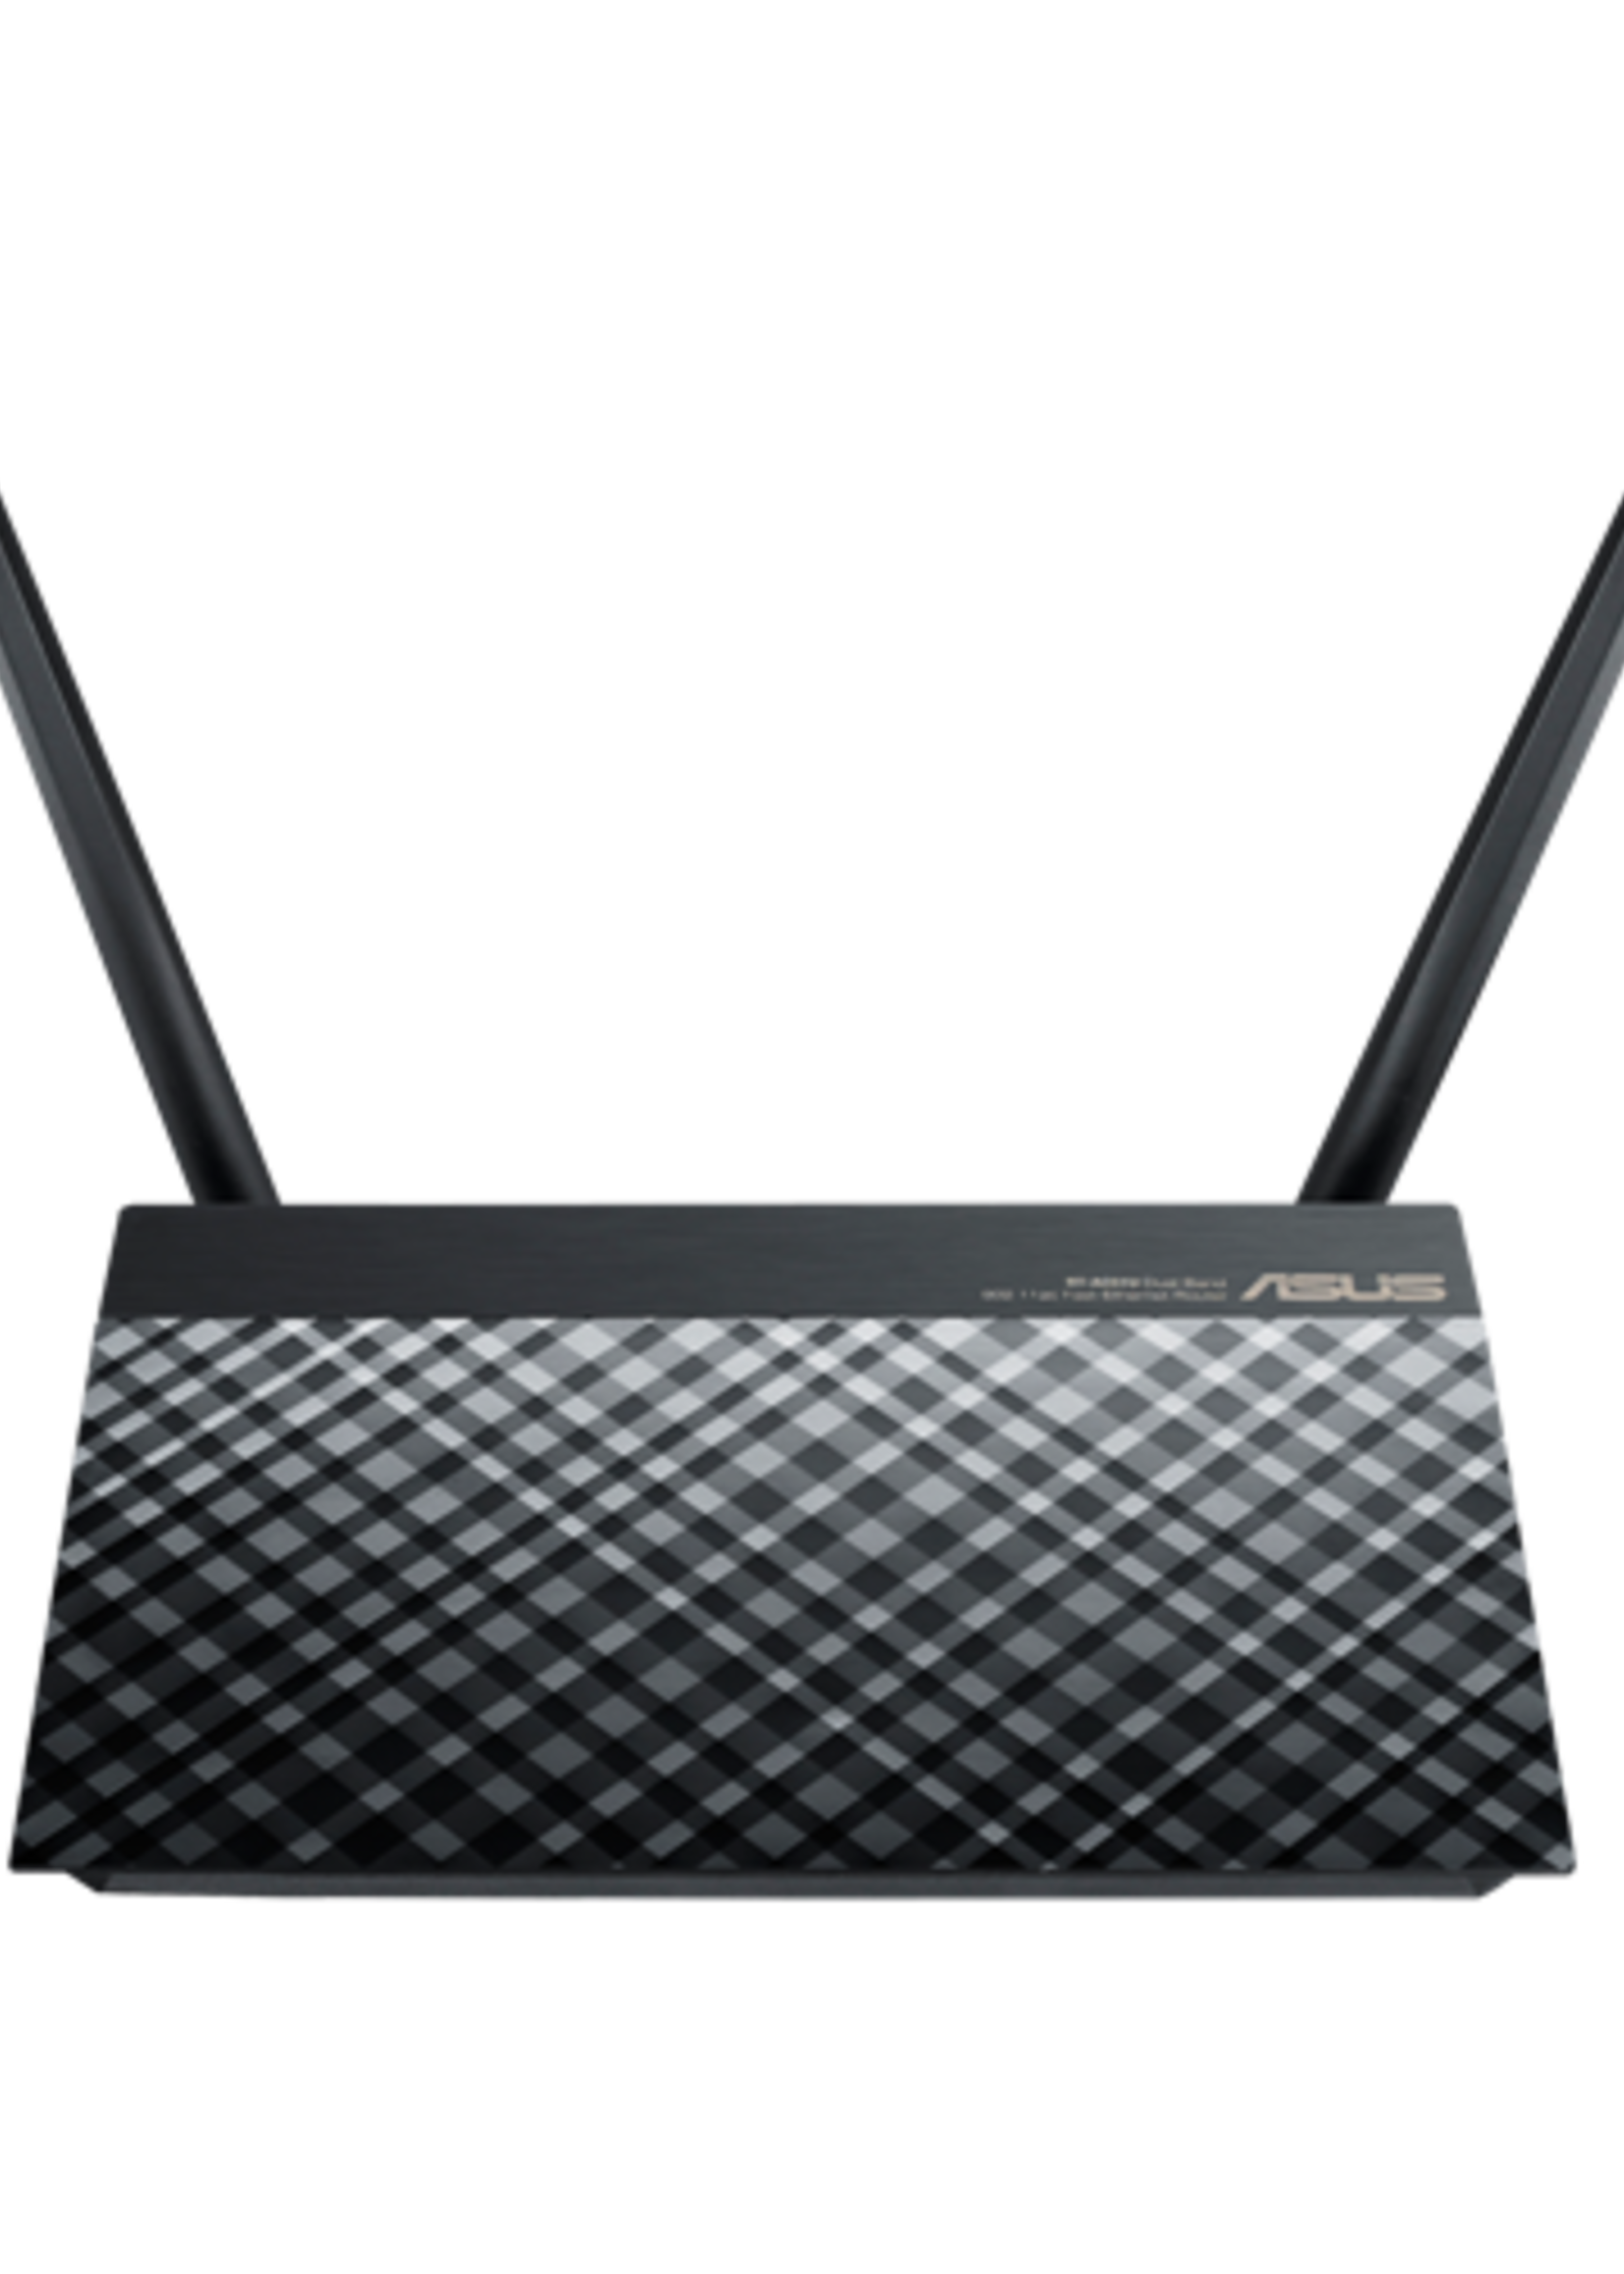 ASUS Asus RT-AC51U AC750 IEEE 802.11ac Ethernet Wireless Router